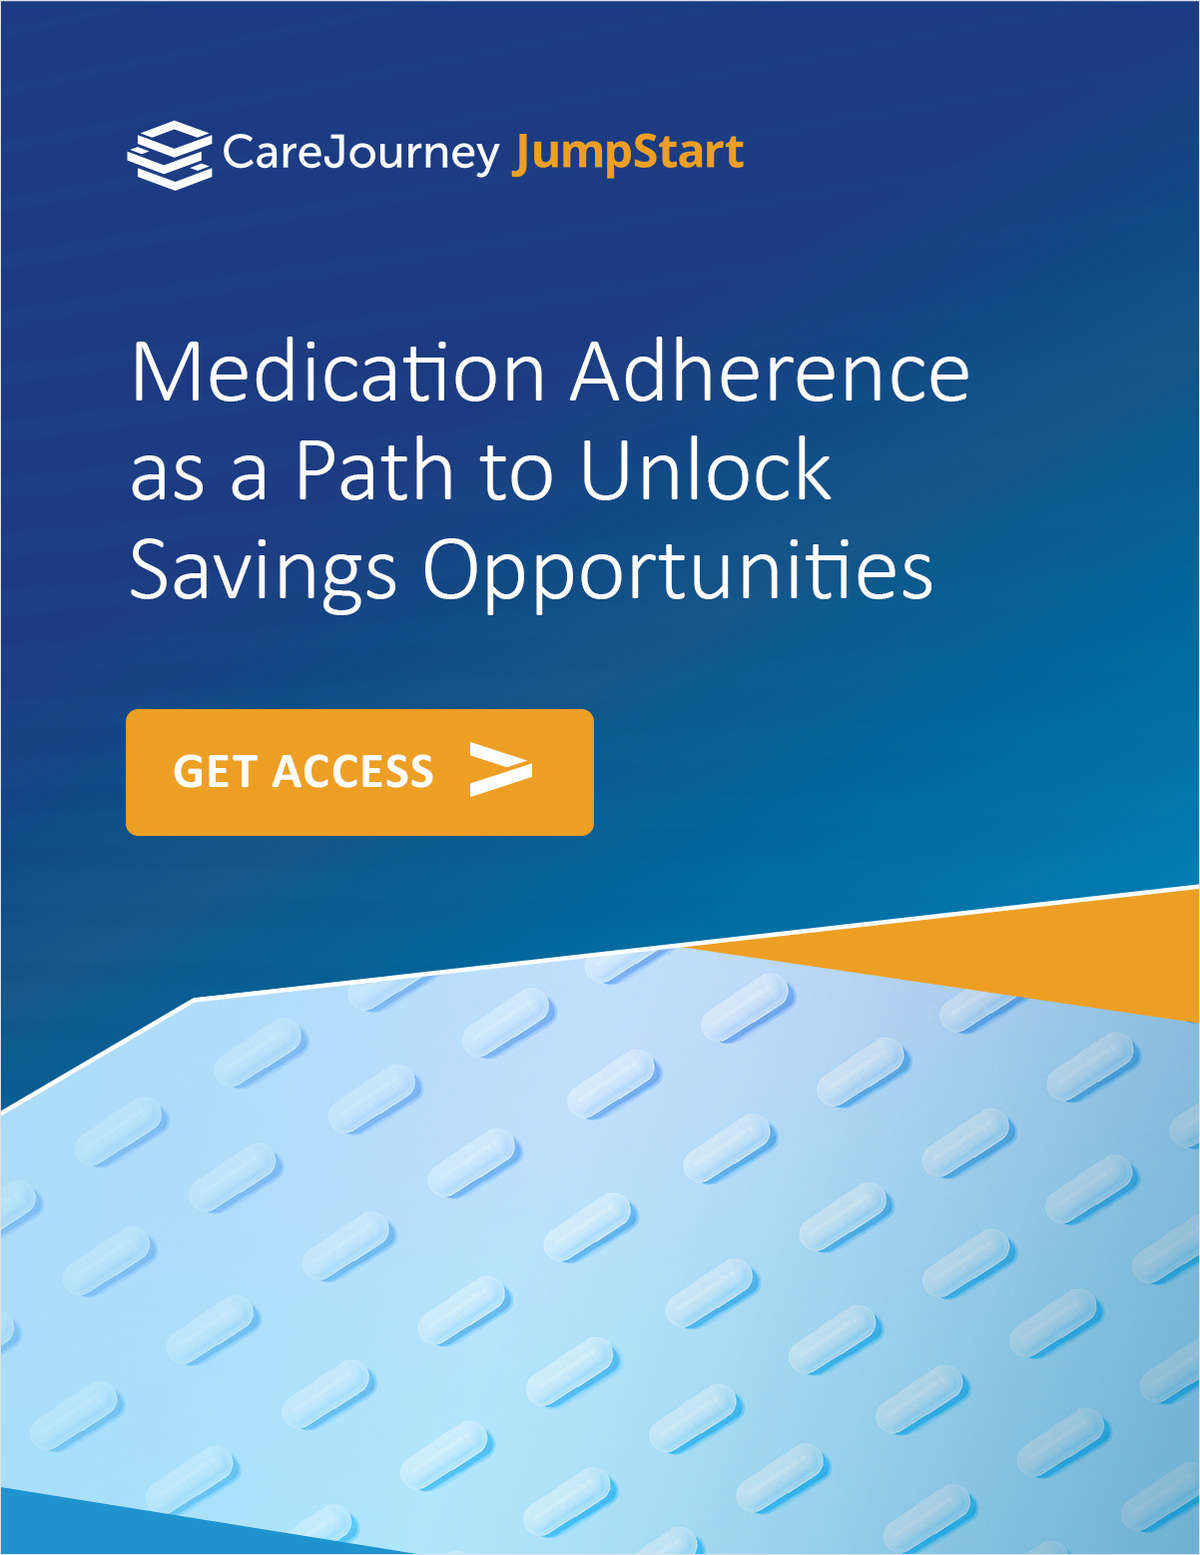 Medication Adherence as a Path to Unlock Savings Opportunities